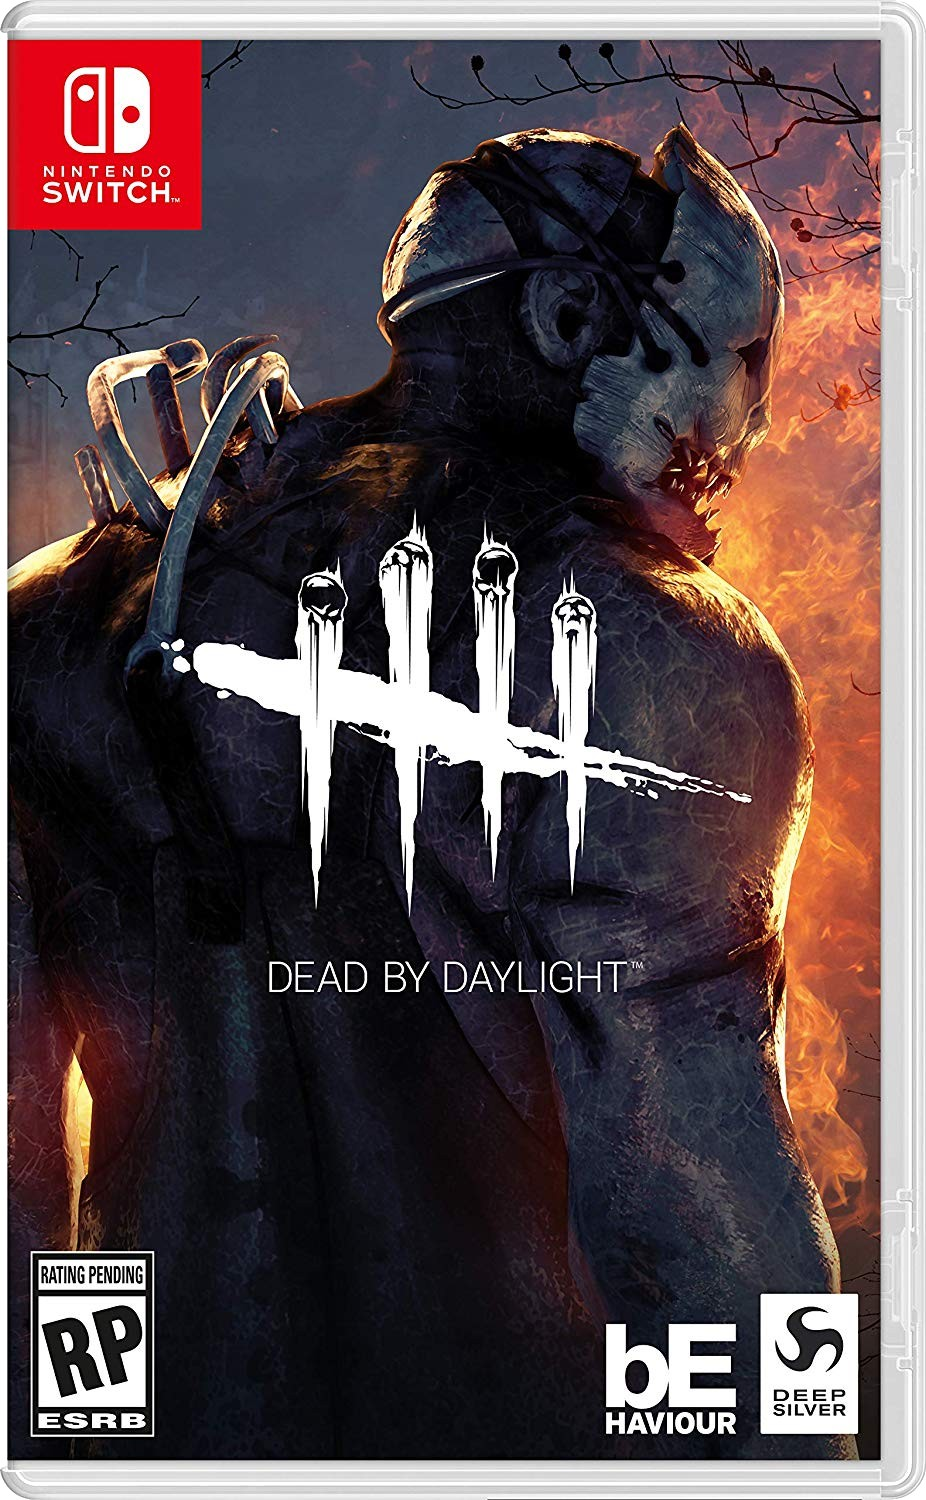 Dead By Daylight For Switch Cover Art Revealed | NintendoSoup